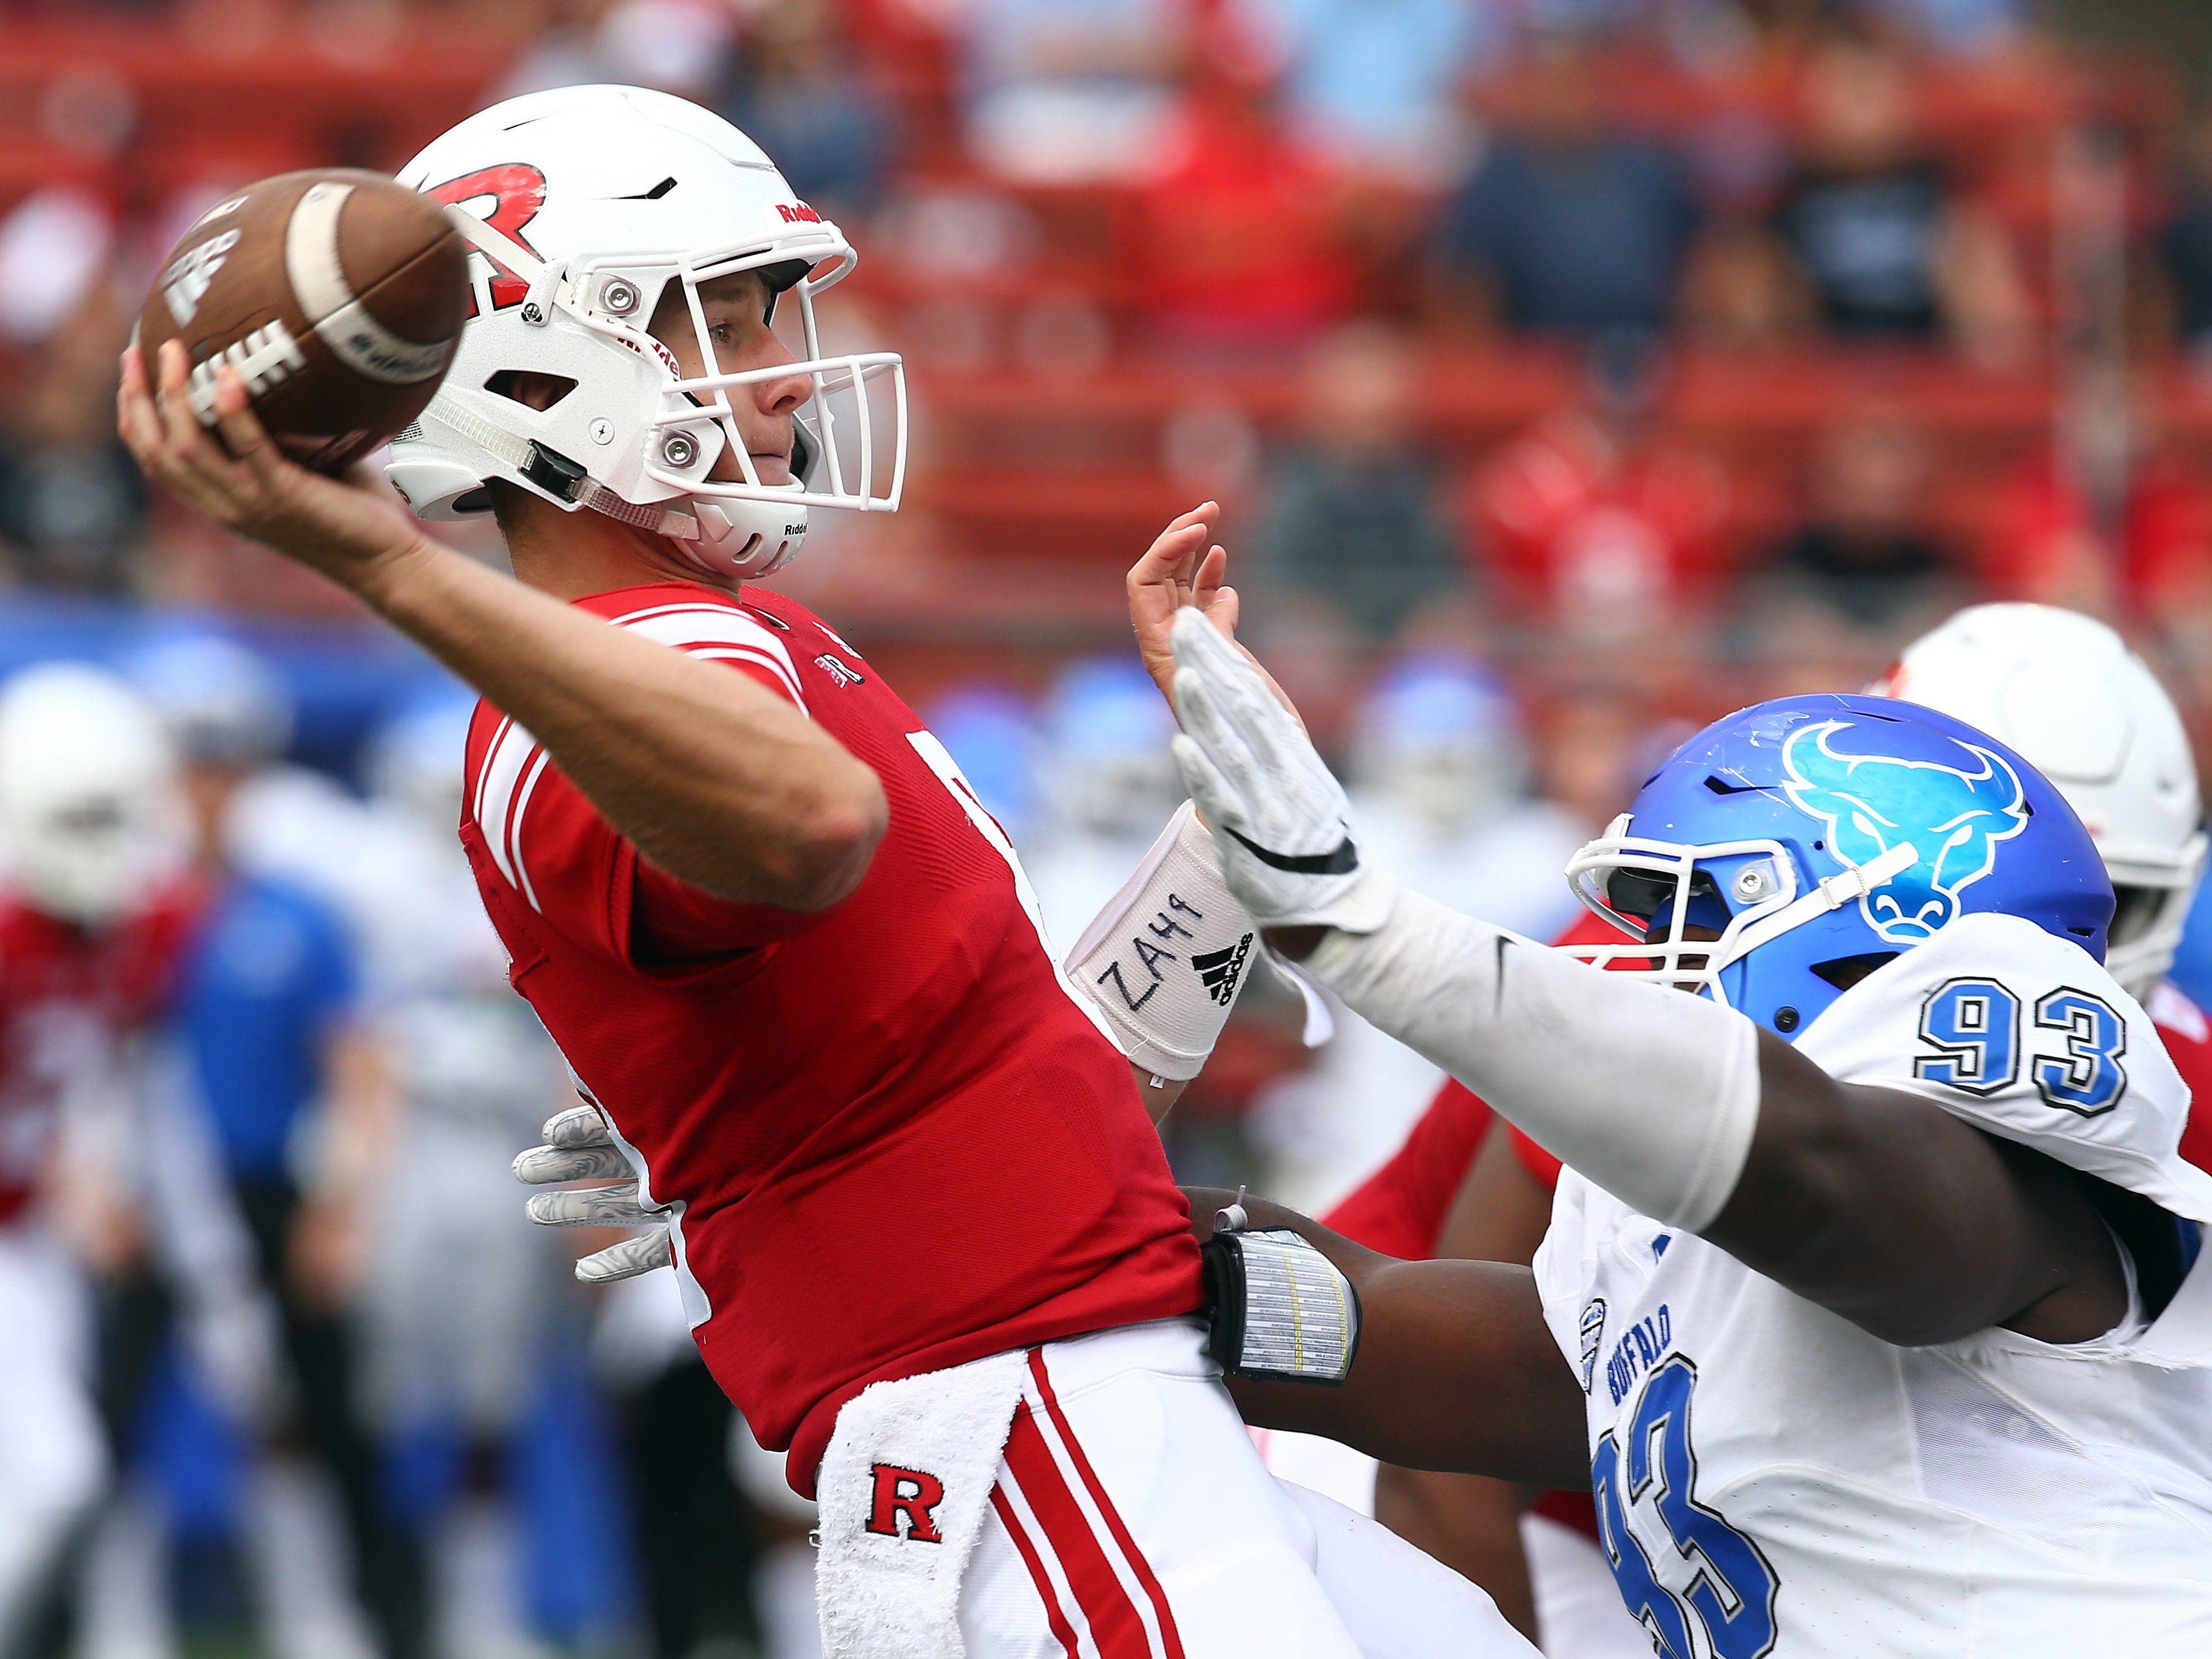 Rutgers Scarlet Knights quarterback Artur Sitkowski is rushed by Buffalo Bulls Chibueze Onwuka at HighPoint.com Stadium in Piscataway. September 22, 2018, Piscataway, NJ